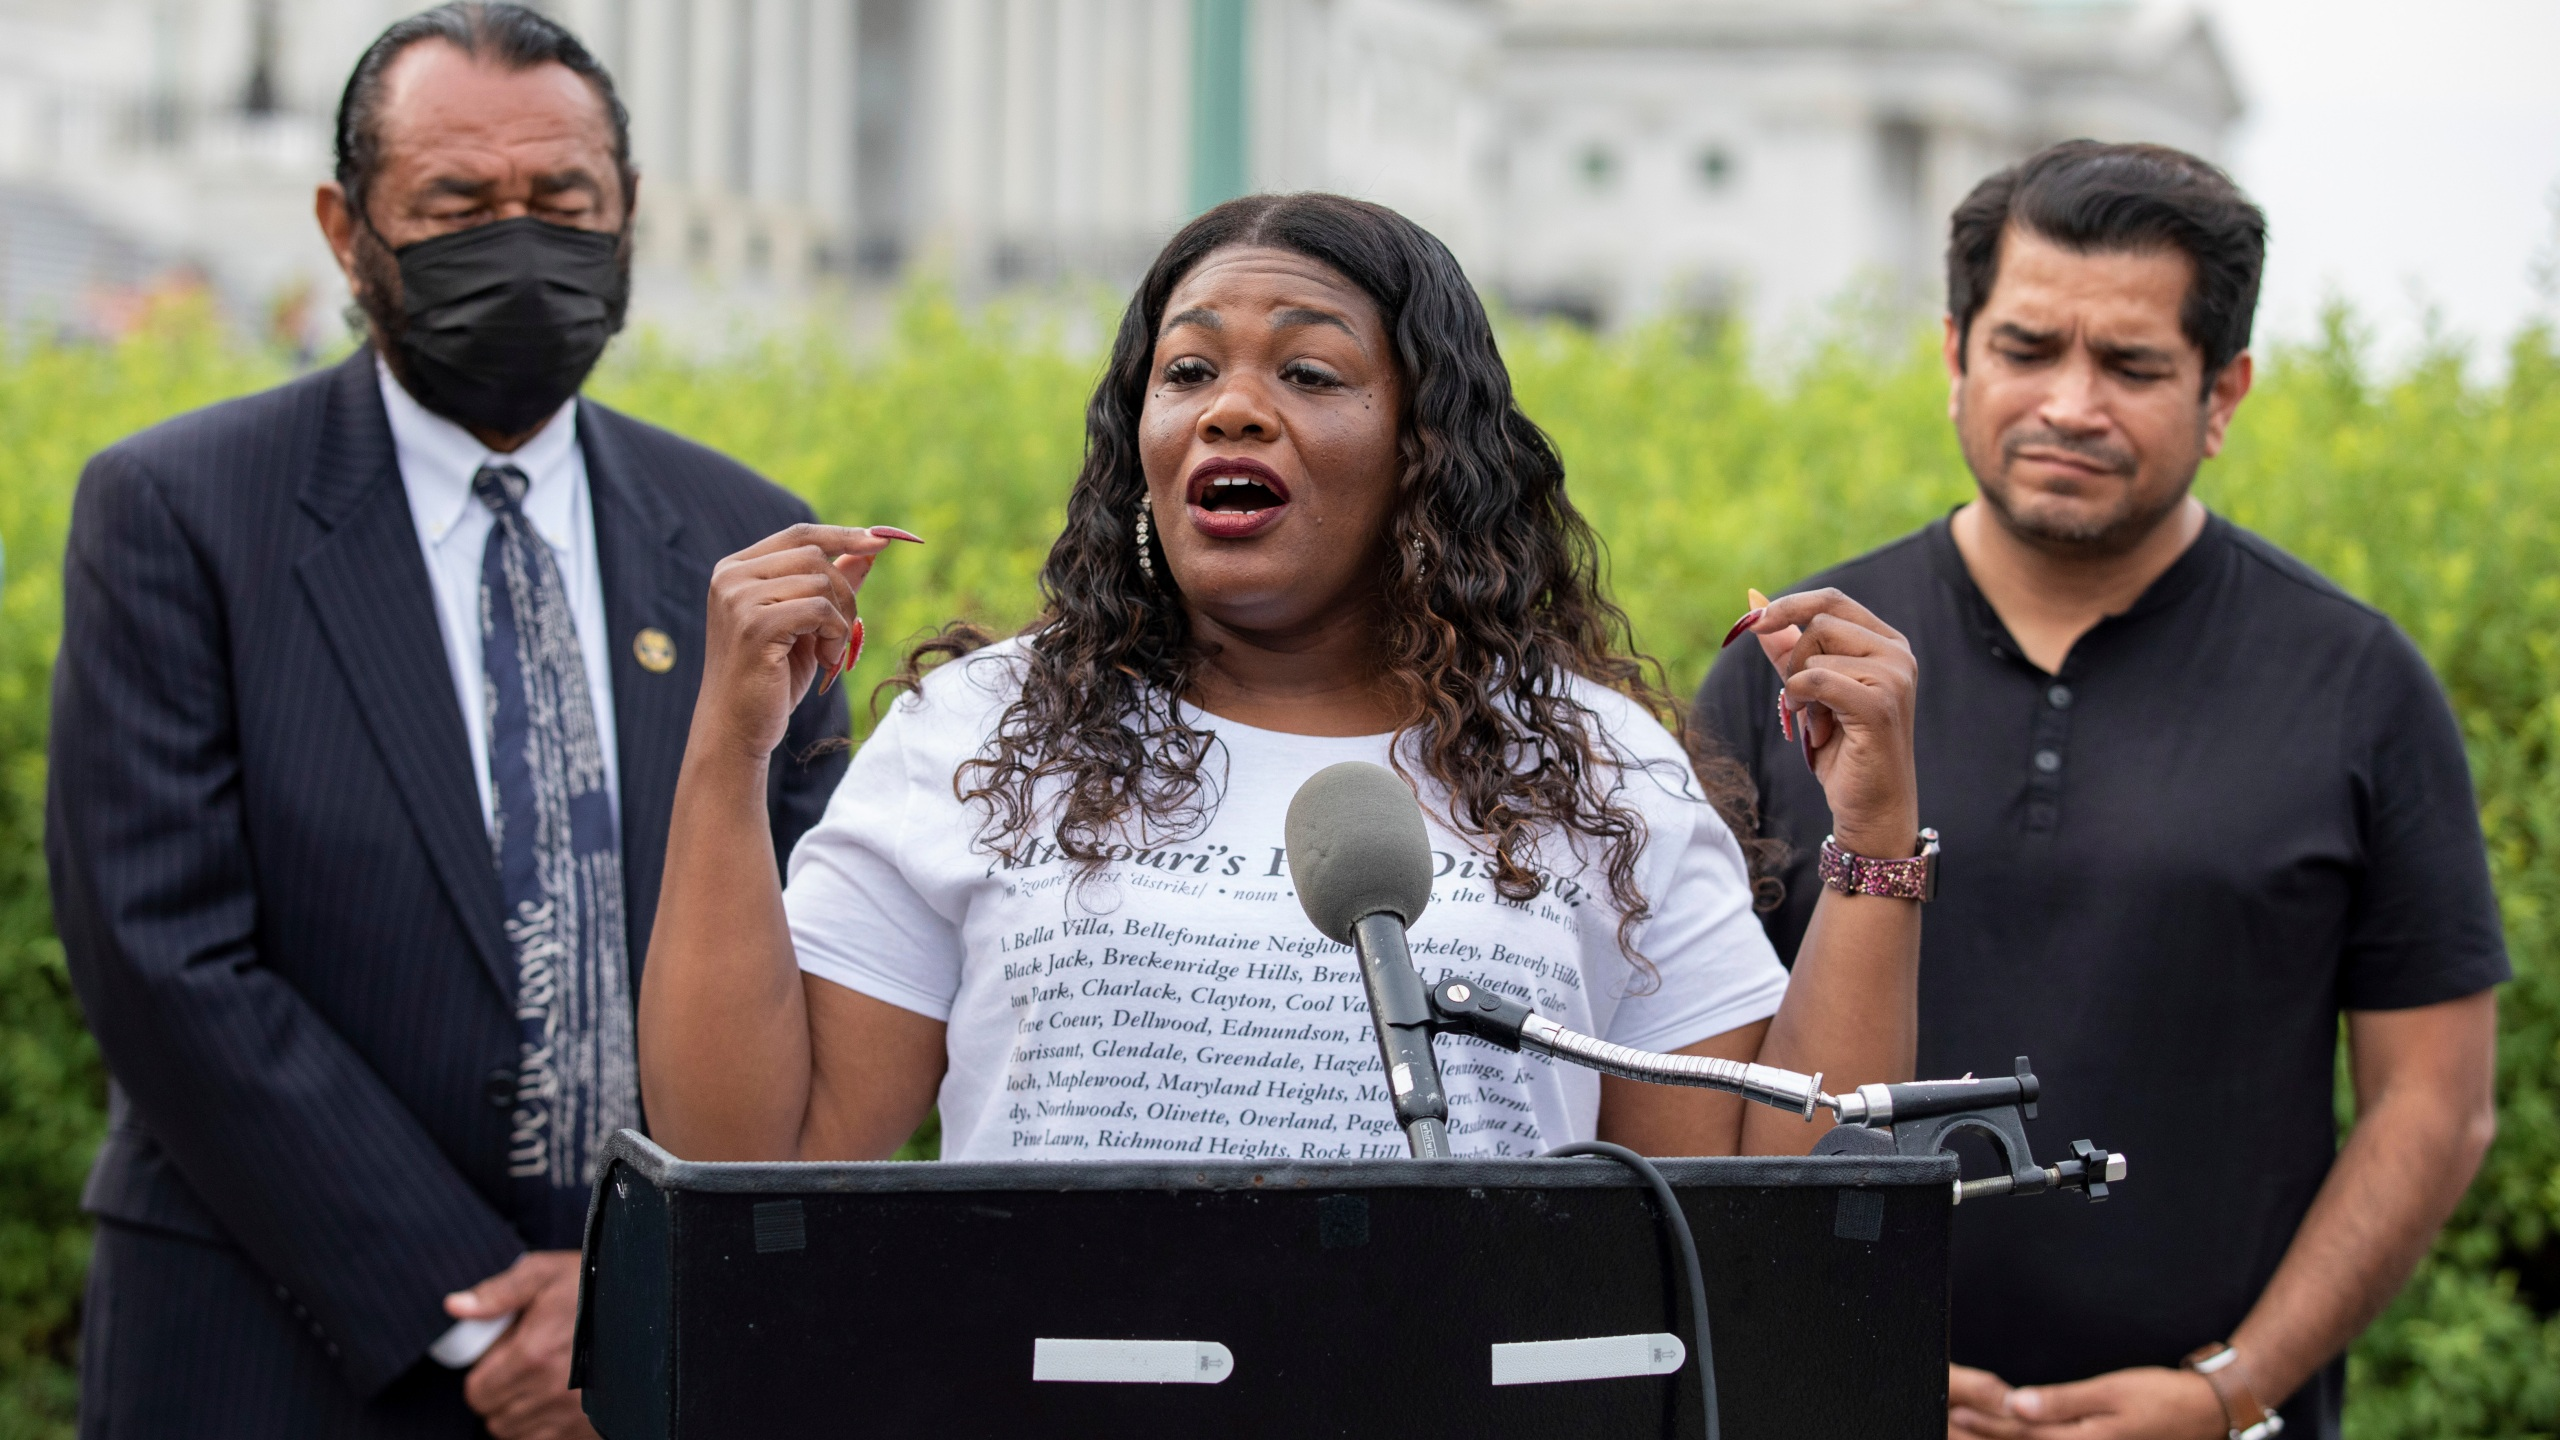 In this Aug. 3, 2021, file photo Rep. Cori Bush, D-Mo., flanked by Rep. Al Green, D-Texas, left, and Rep. Jimmy Gomez, D-Calif., right, speaks to the press after it was announced that the Biden administration will enact a targeted nationwide eviction moratorium outside of Capitol Hill in Washington. Several progressive lawmakers, including Bush, on Tuesday, Sept. 21, introduced a bill that would reimpose a nationwide eviction moratorium at a time when deaths from COVID-19 are running at their highest levels since early March. (AP Photo/Amanda Andrade-Rhoades, File)